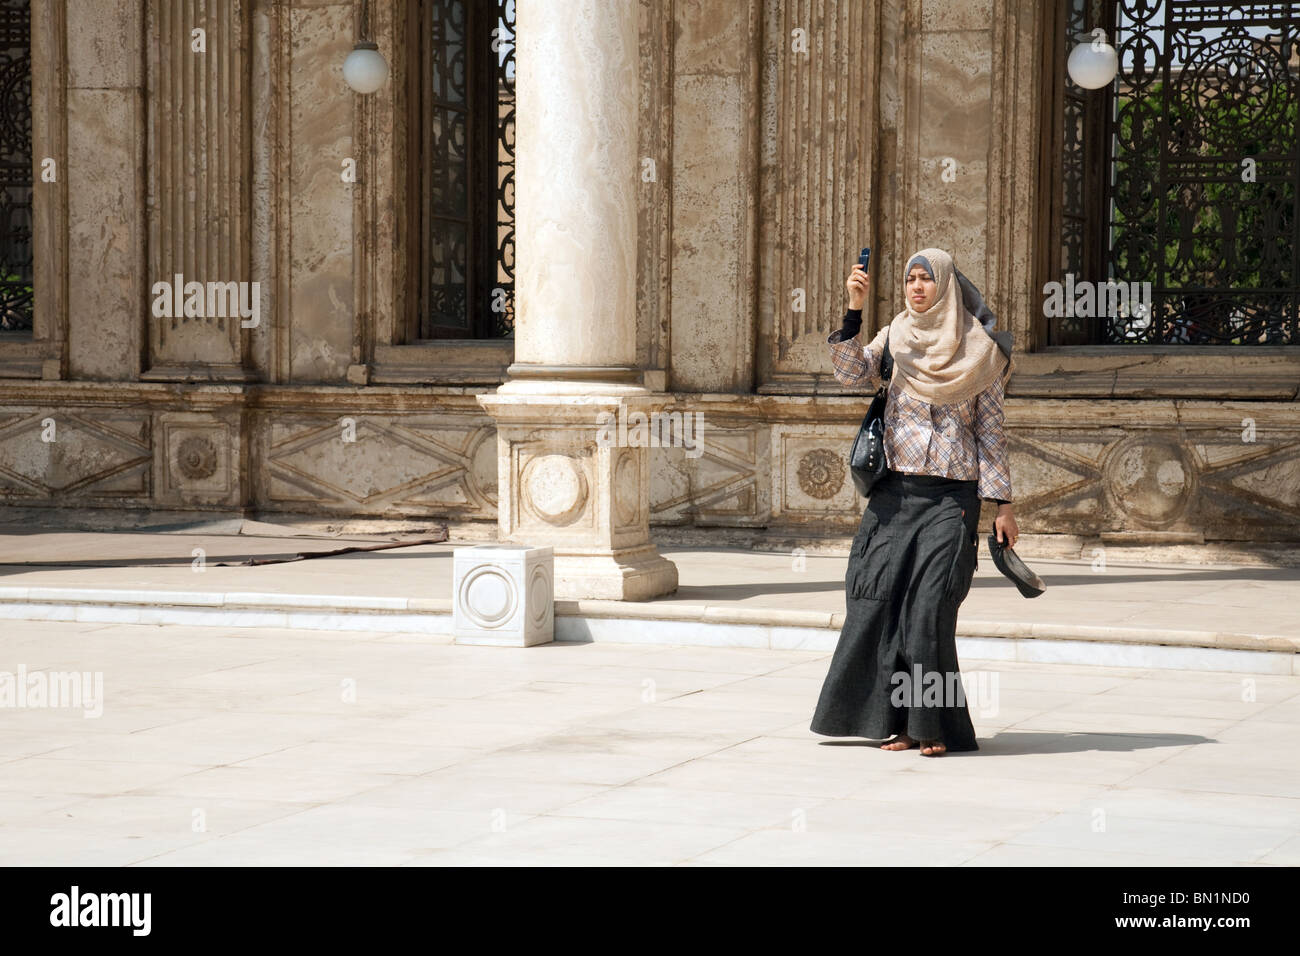 Moslem woman taking a photograph, Muhammad Ali Mosque, Cairo, Egypt - Stock Image